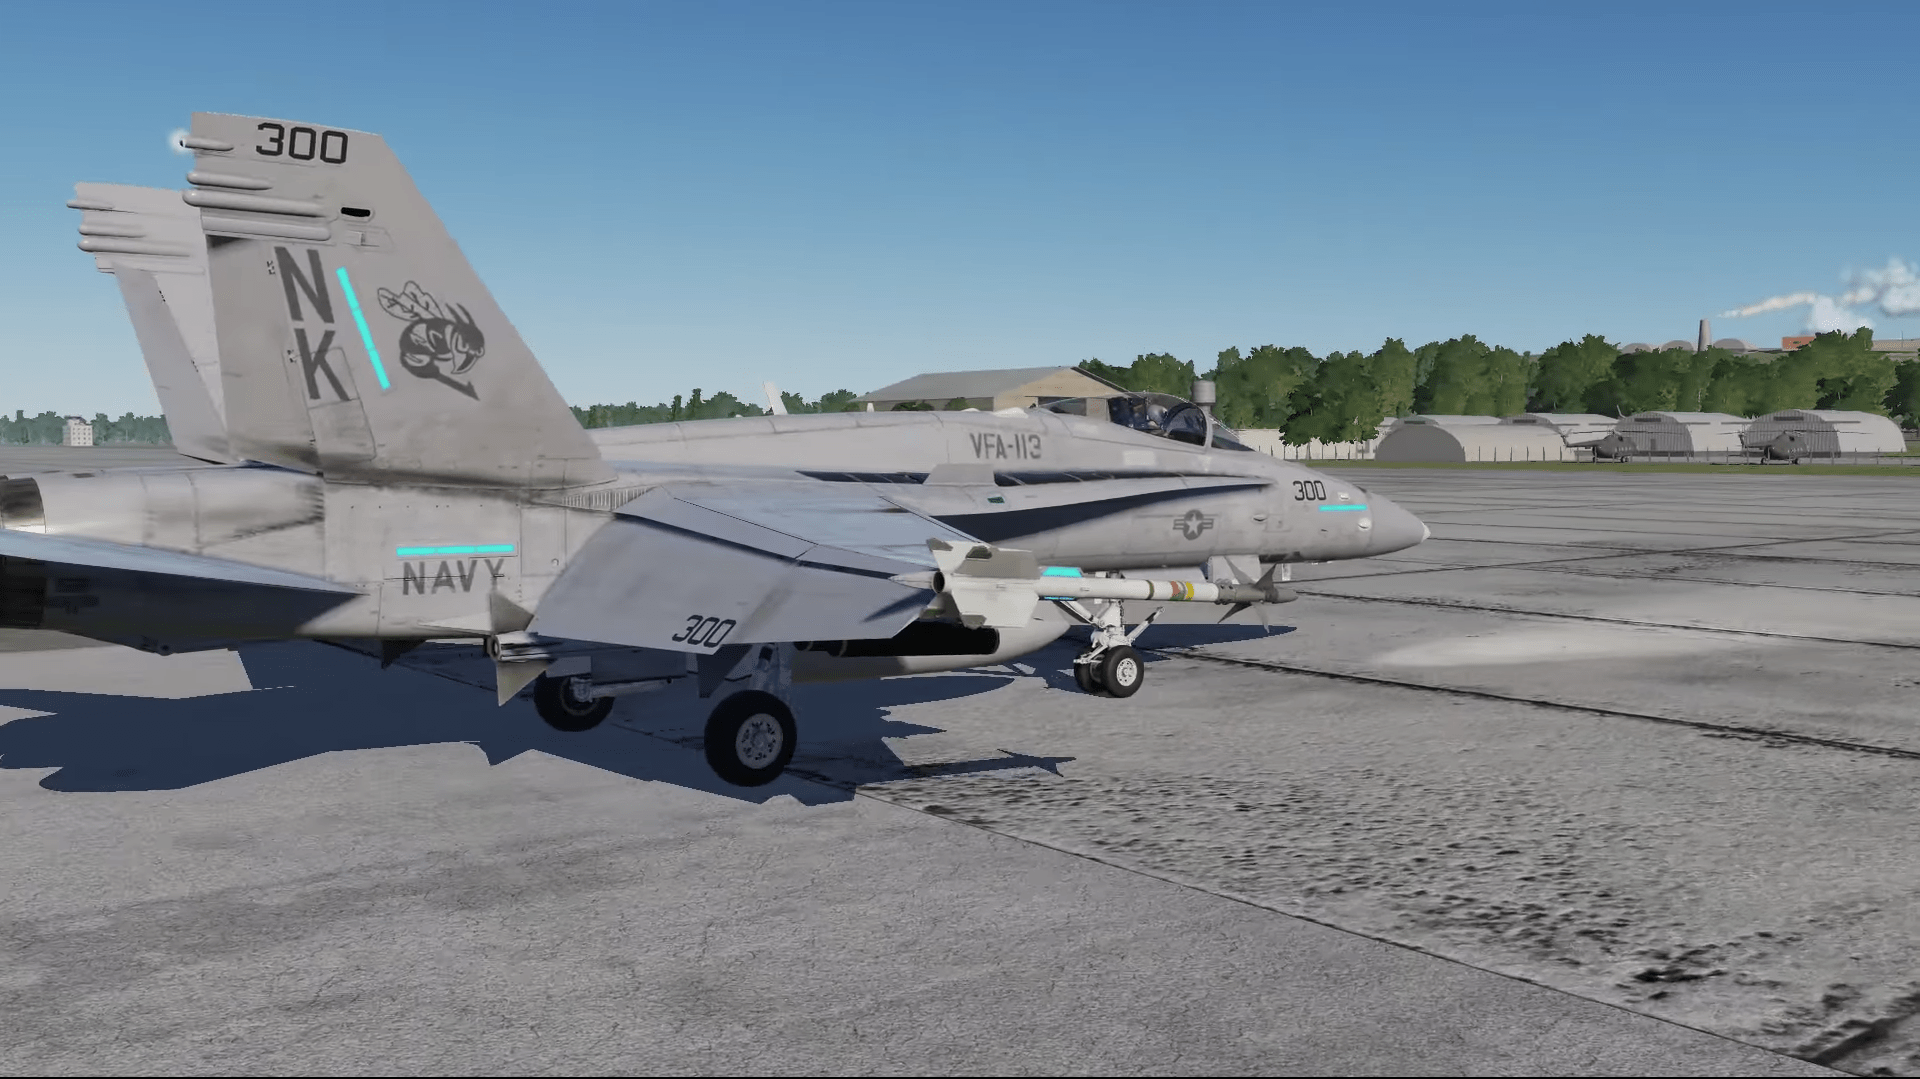 Work continues on DCS: F/A-18C Hornet – Stormbirds